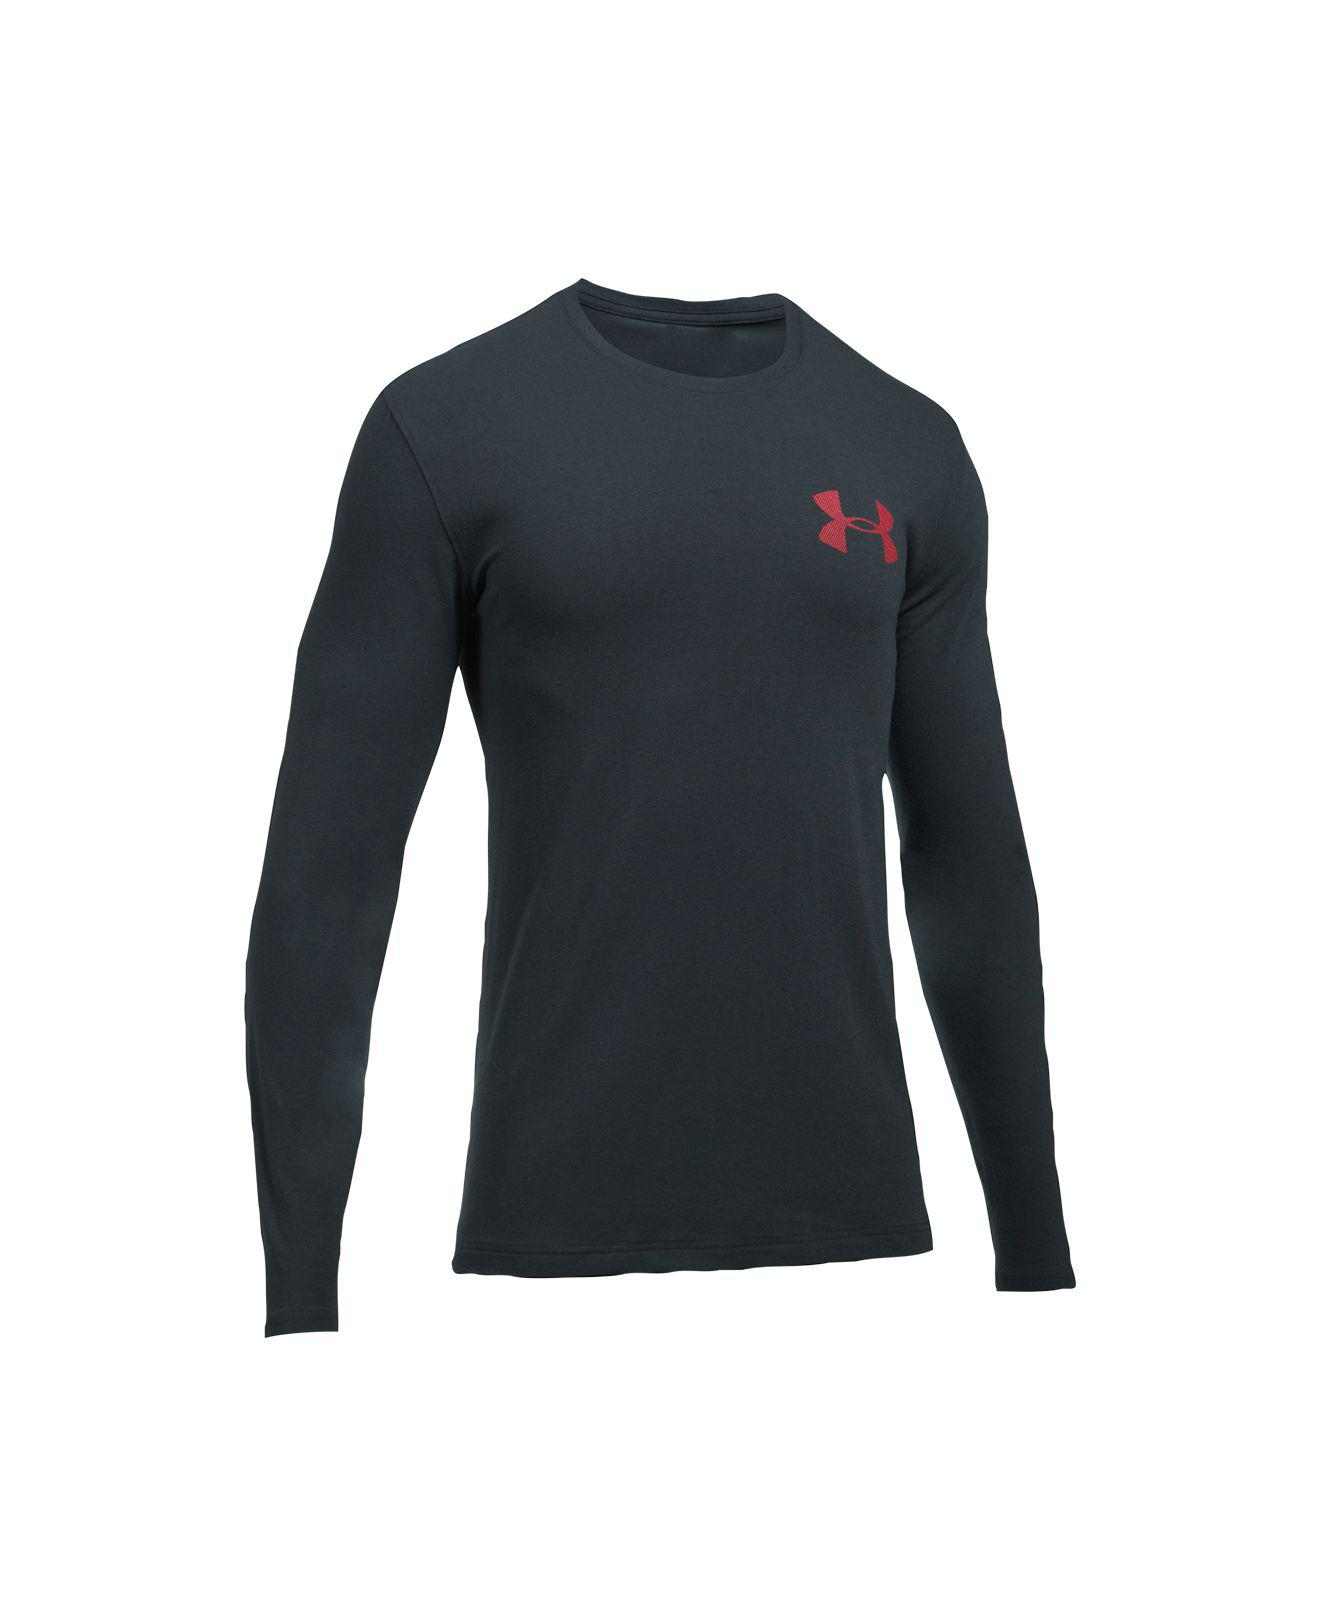 Under armour men 39 s charged cotton long sleeve t shirt in for Gray under armour shirt